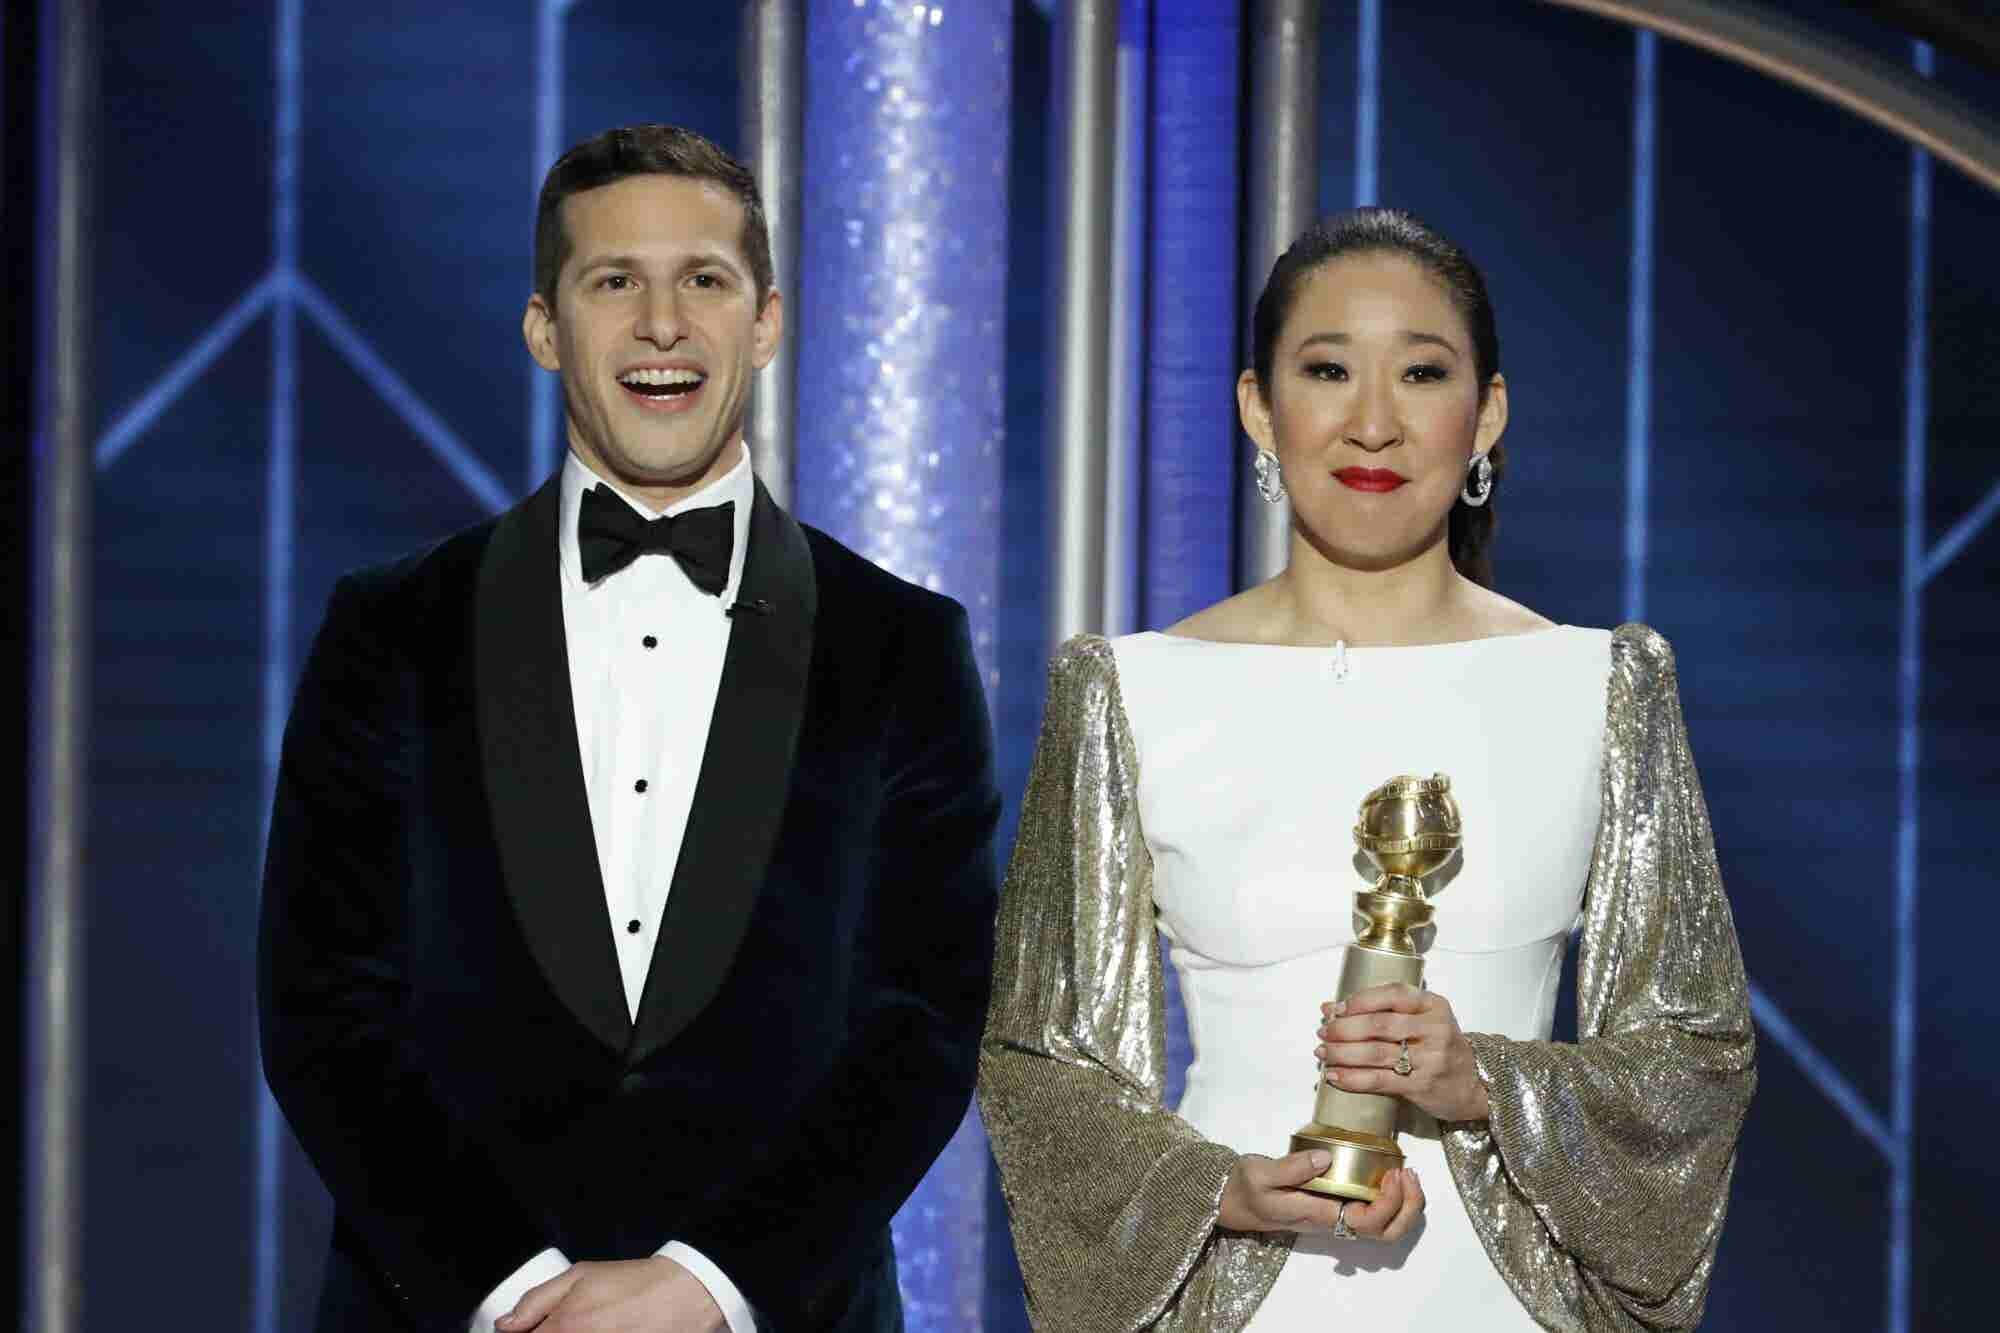 4 Entrepreneurial Lessons From the 2019 Golden Globes